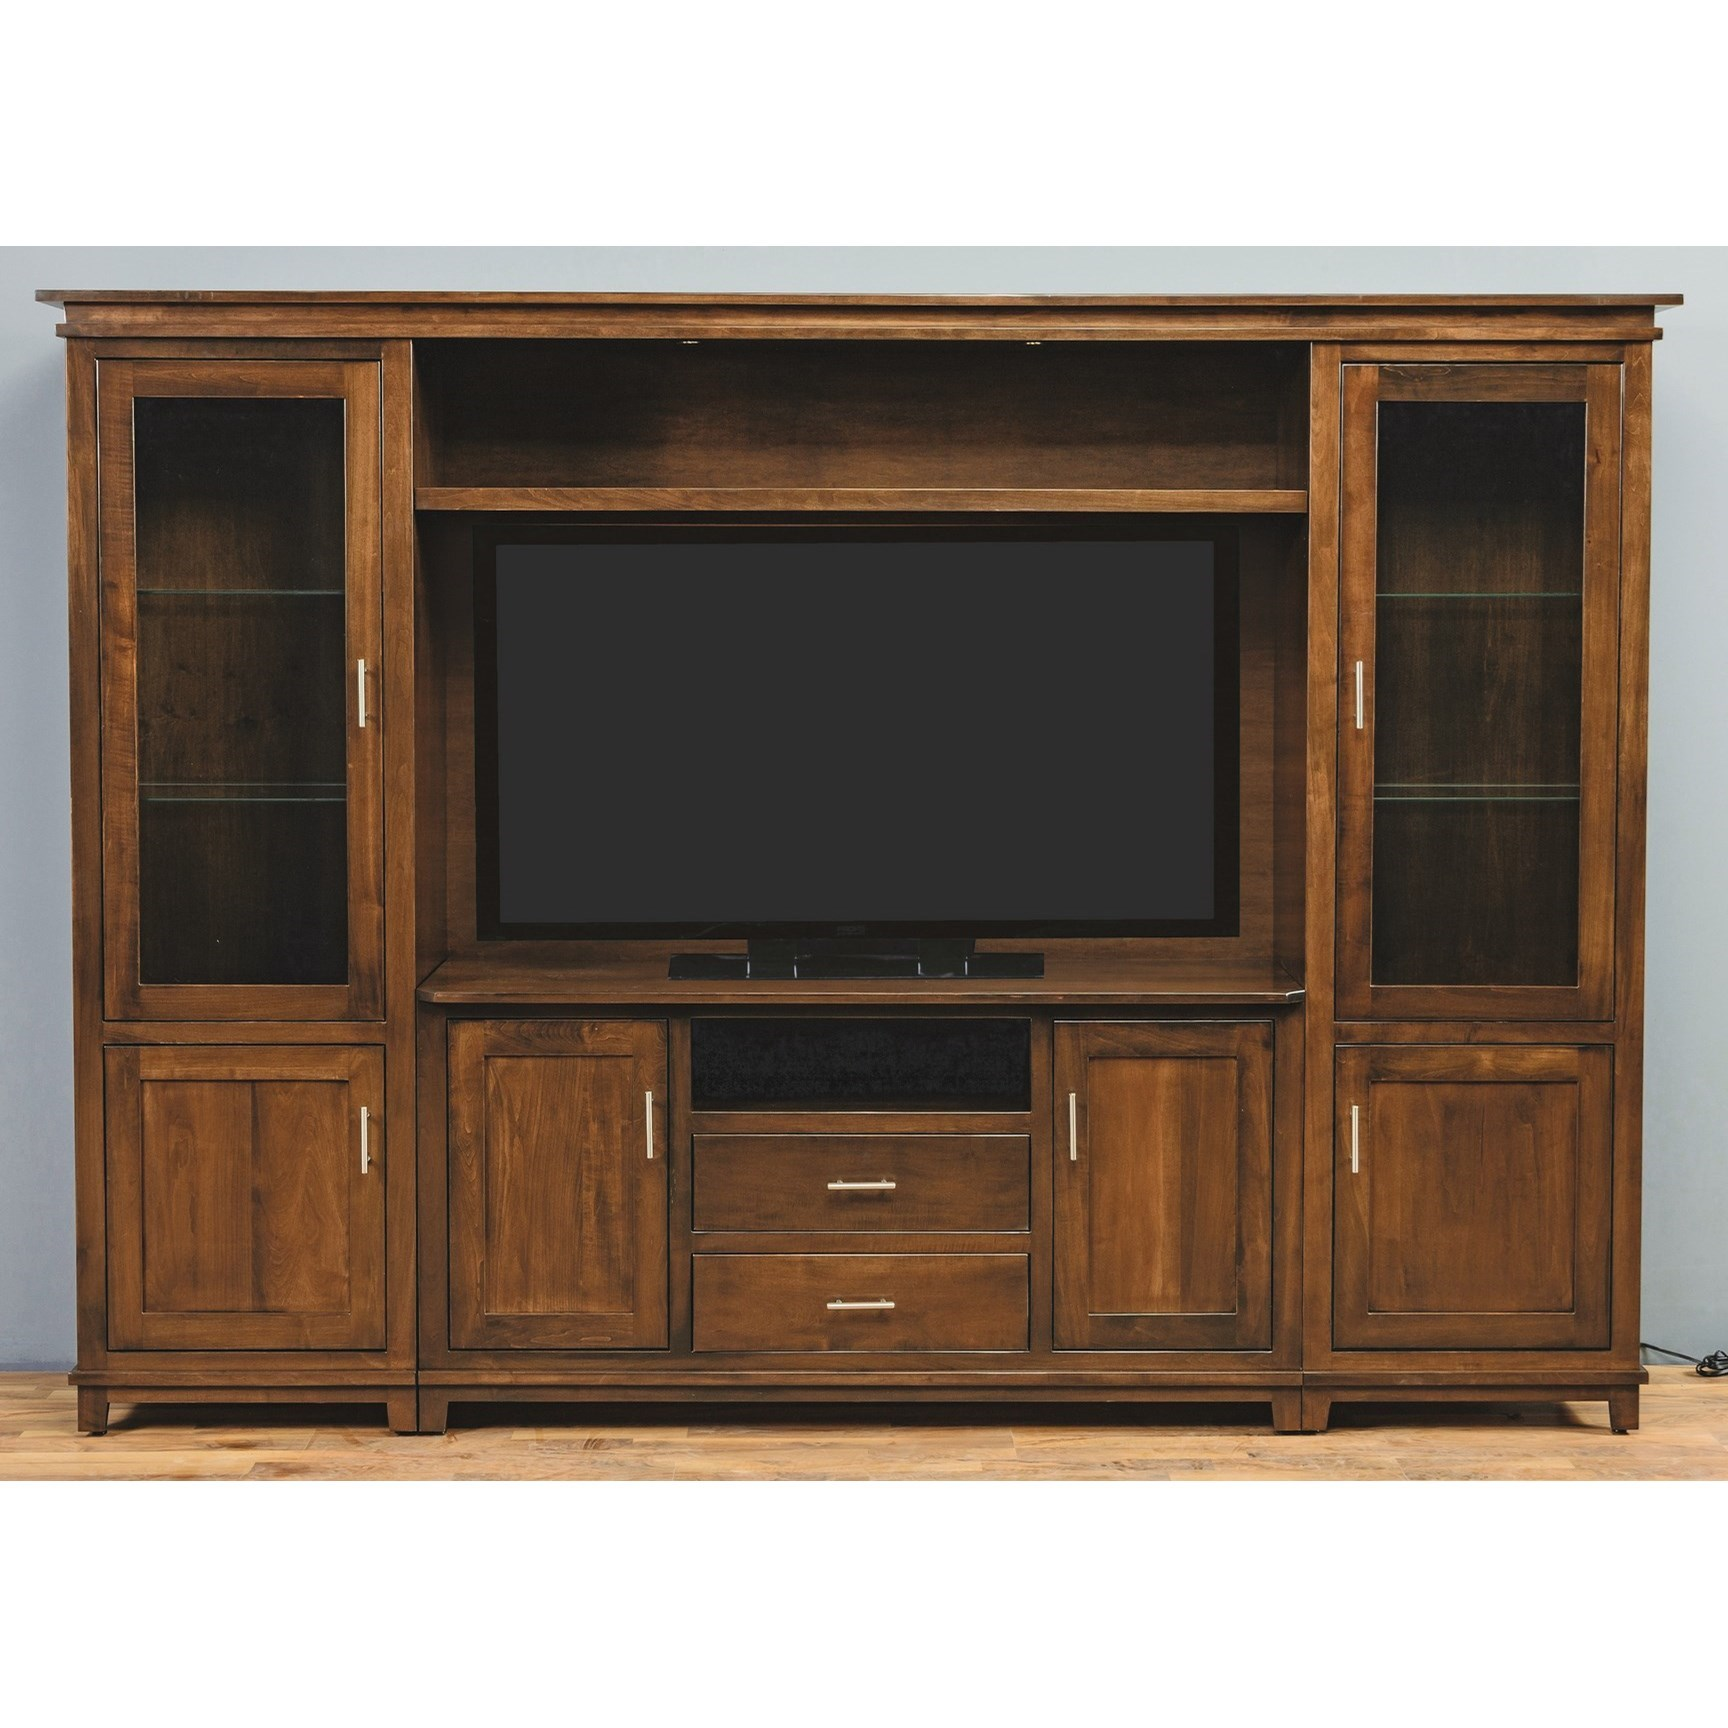 Entertainment Customizable Hilton Wall Unit by INTEG Wood Products at Saugerties Furniture Mart